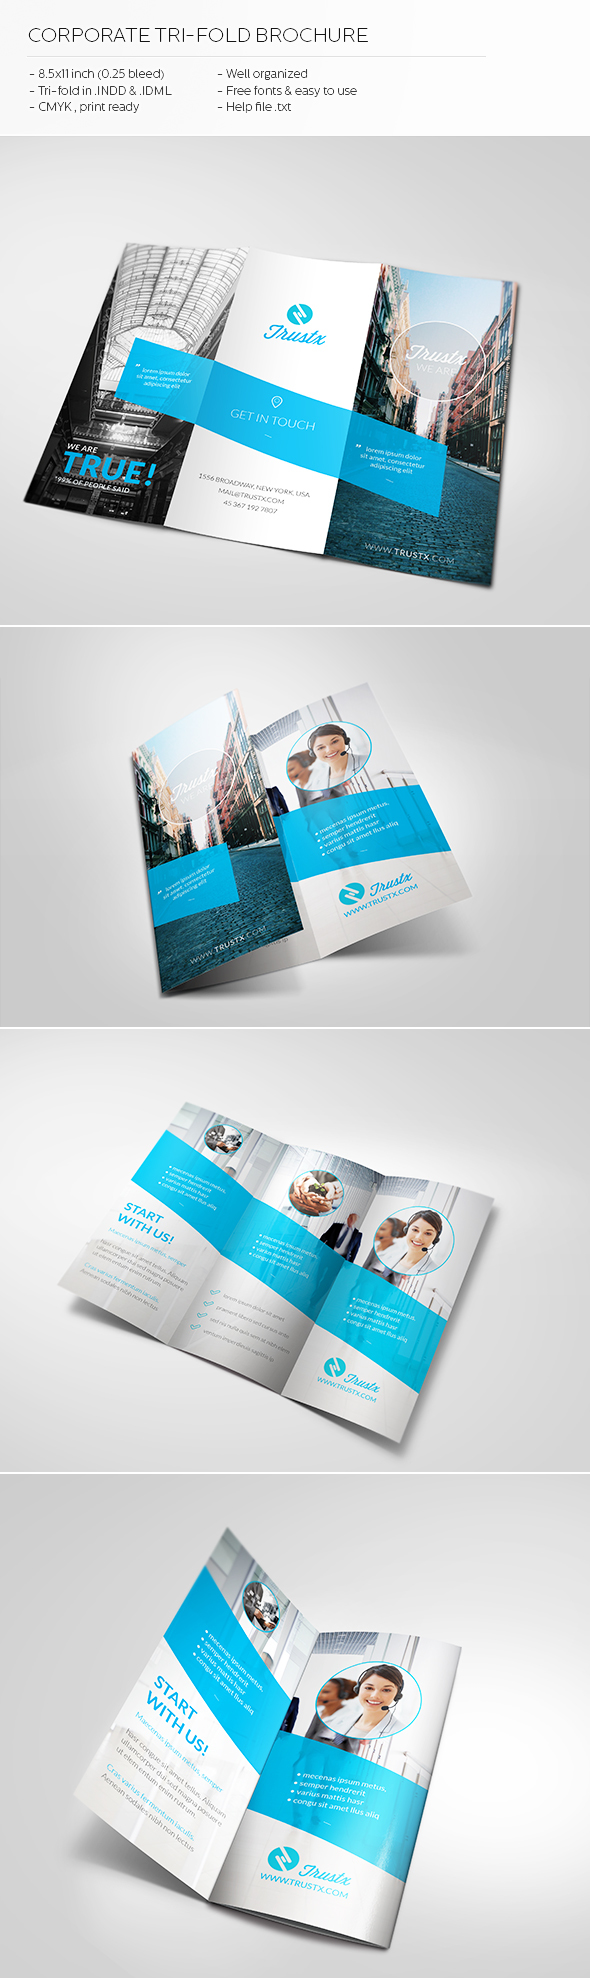 hotel brochure design inspiration - 25 brochure inspirations to boost your product sales